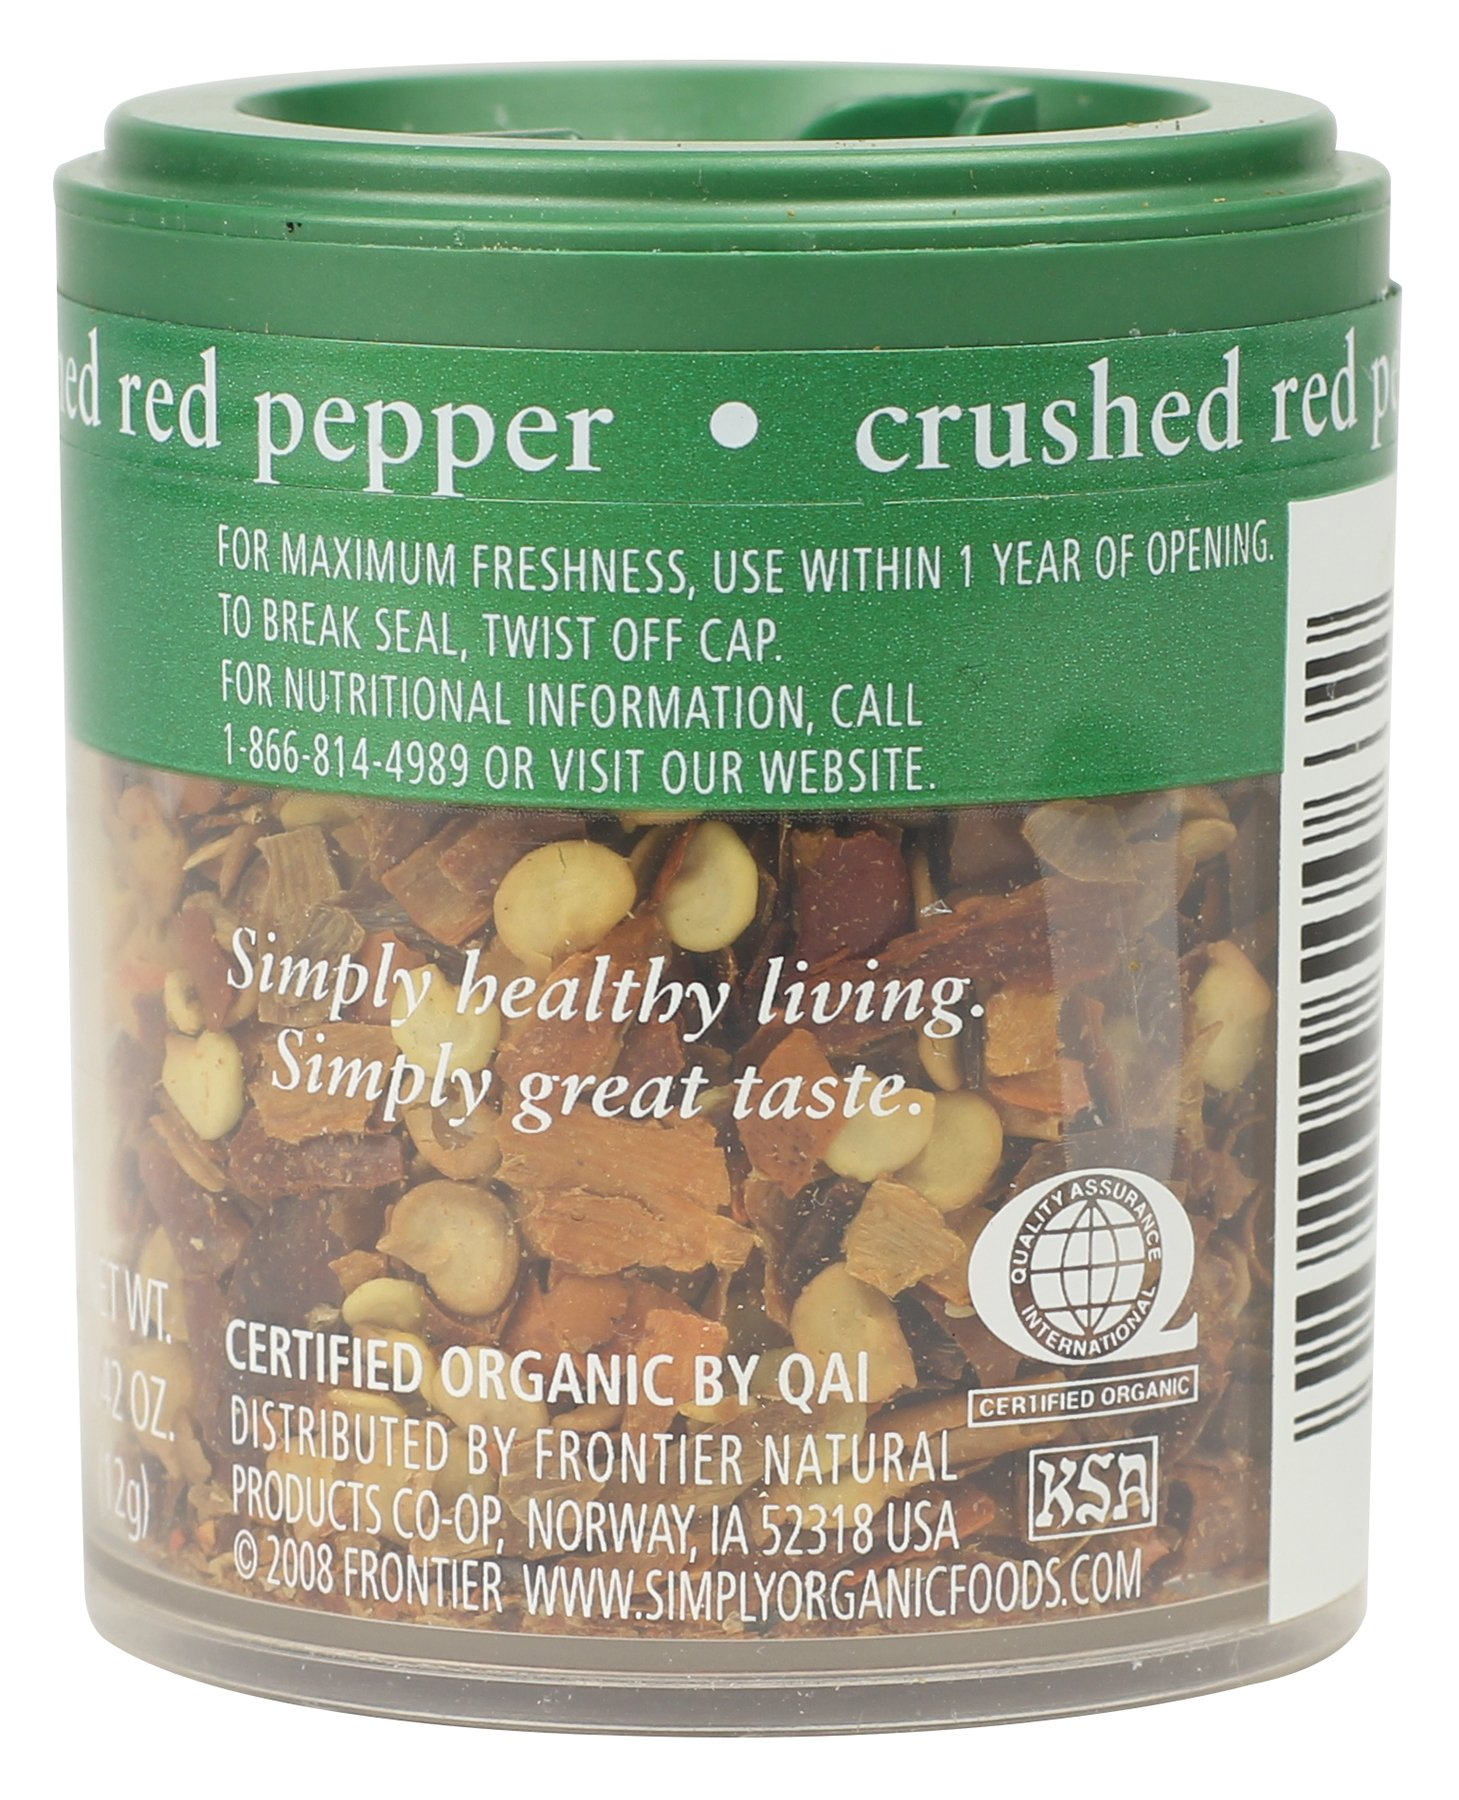 Simply Organic Red Pepper Crushed Certified Organic, 0.42-Ounce (Pack of 6)